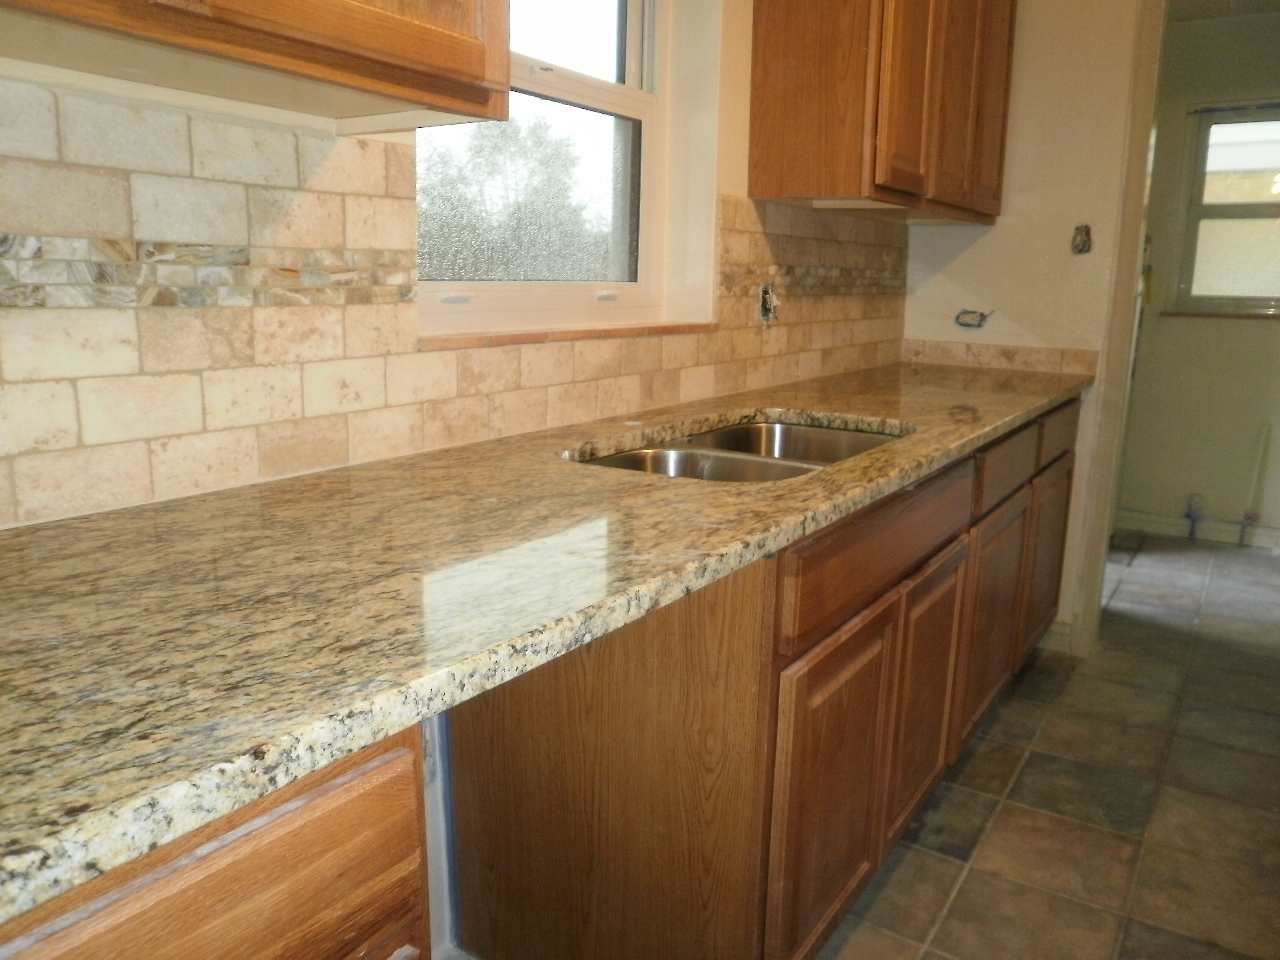 Granite Countertops And Backsplash Designs Integrity Installations A Division Of Front